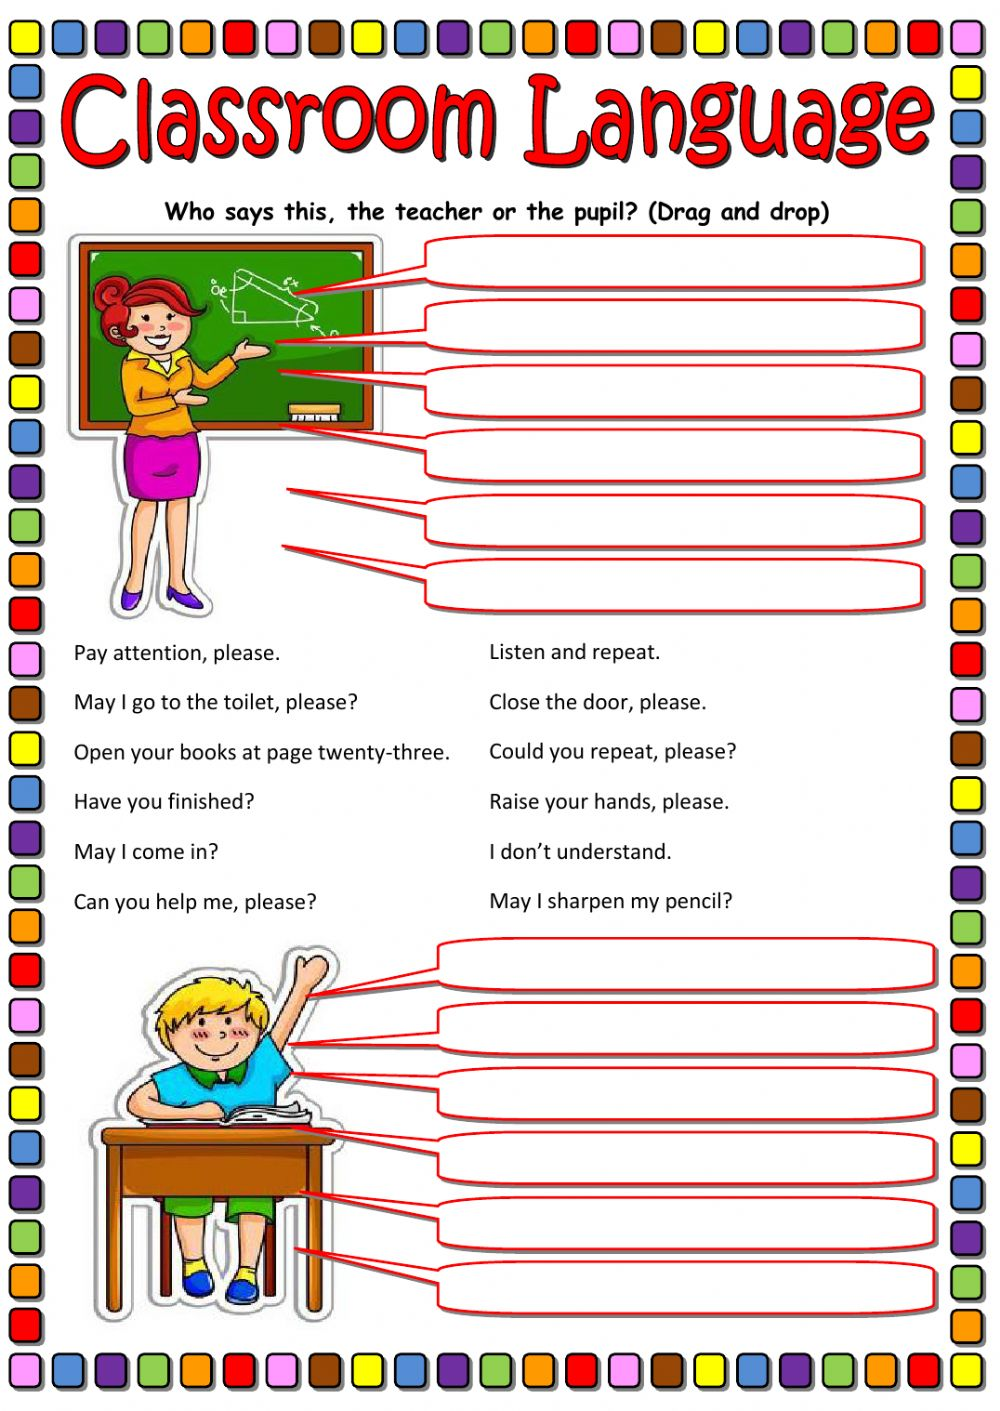 classroom language interactive worksheet. Black Bedroom Furniture Sets. Home Design Ideas